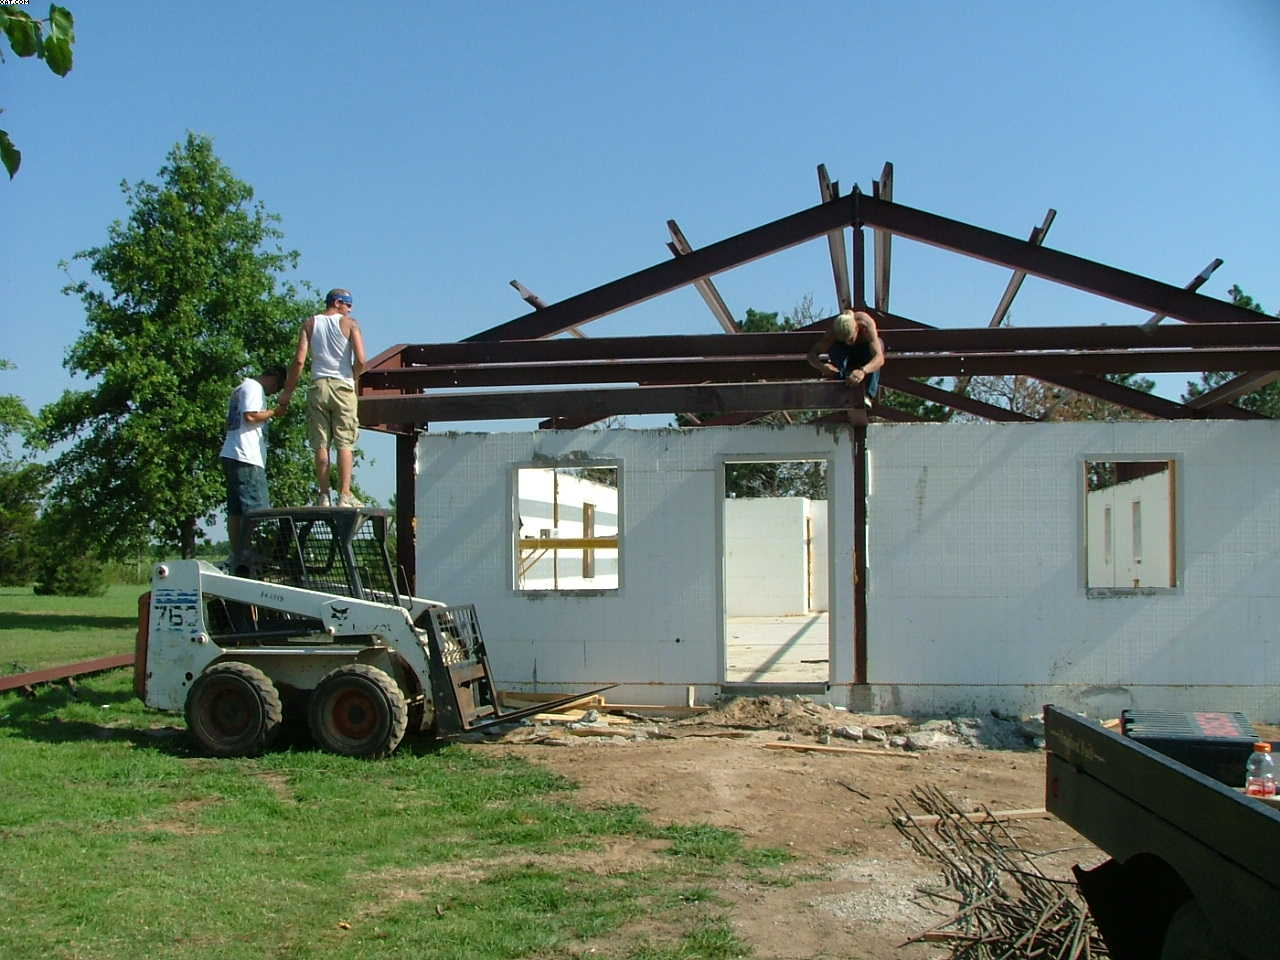 Steel icf home ponca city oklahoma construction Building a house in oklahoma